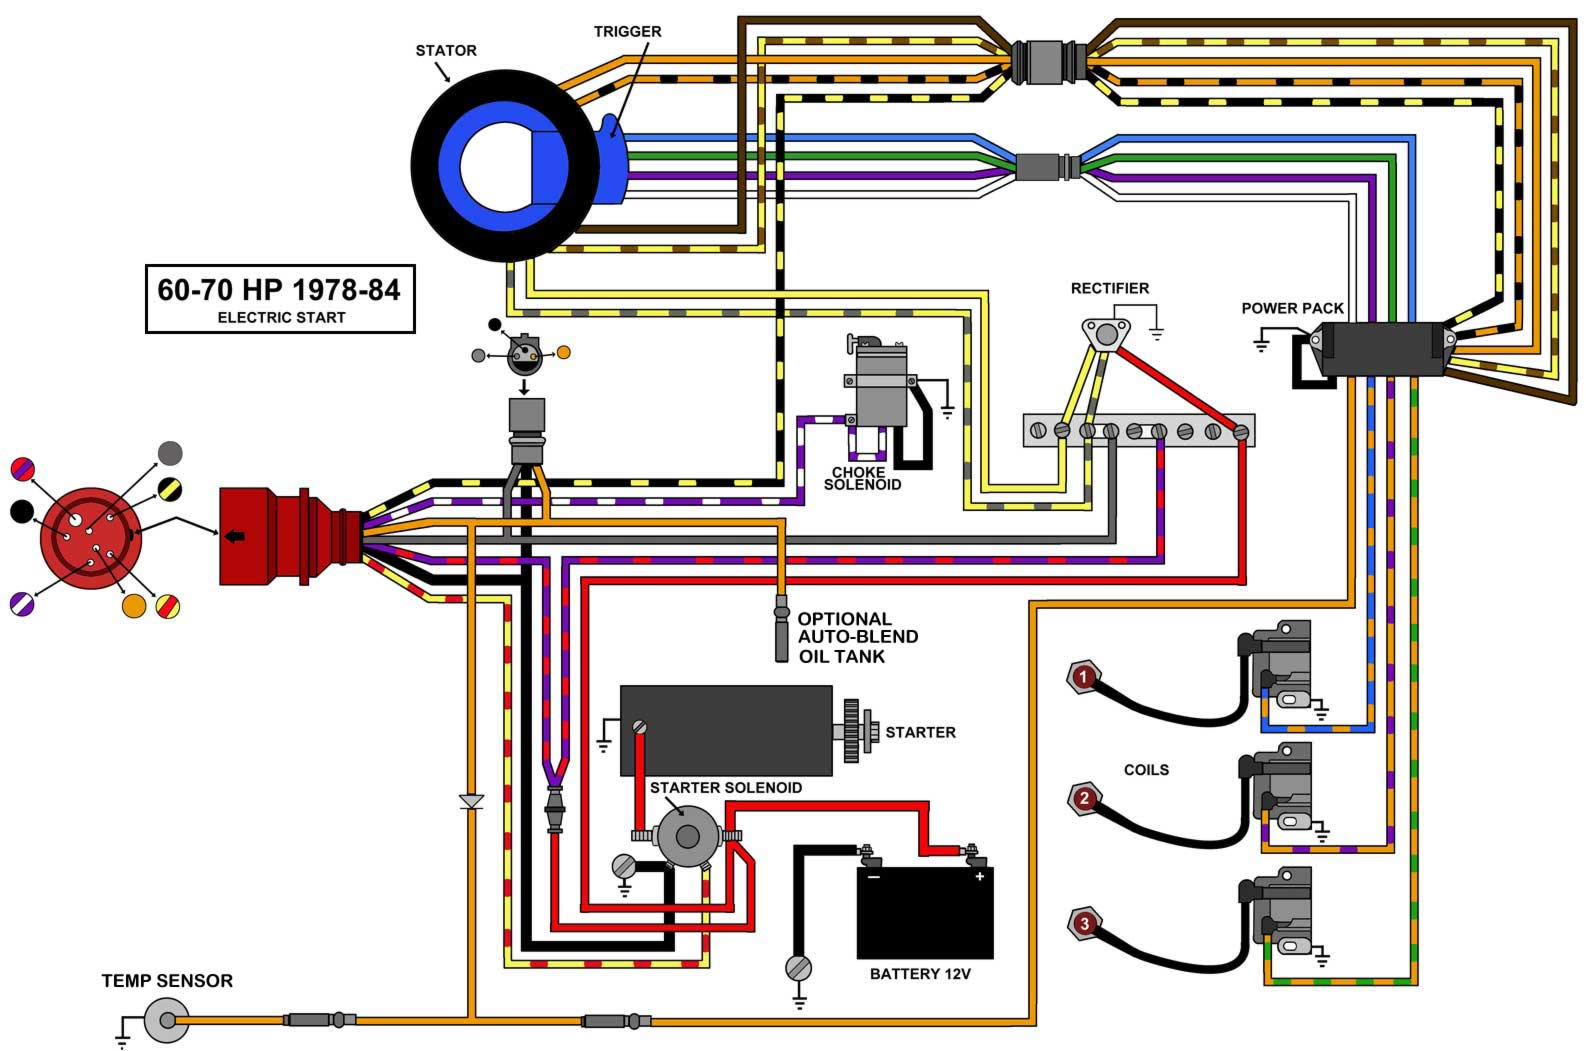 78 84_3 CYL_EL wiring diagram for johnson tilt and trim wiring wiring diagrams  at gsmportal.co